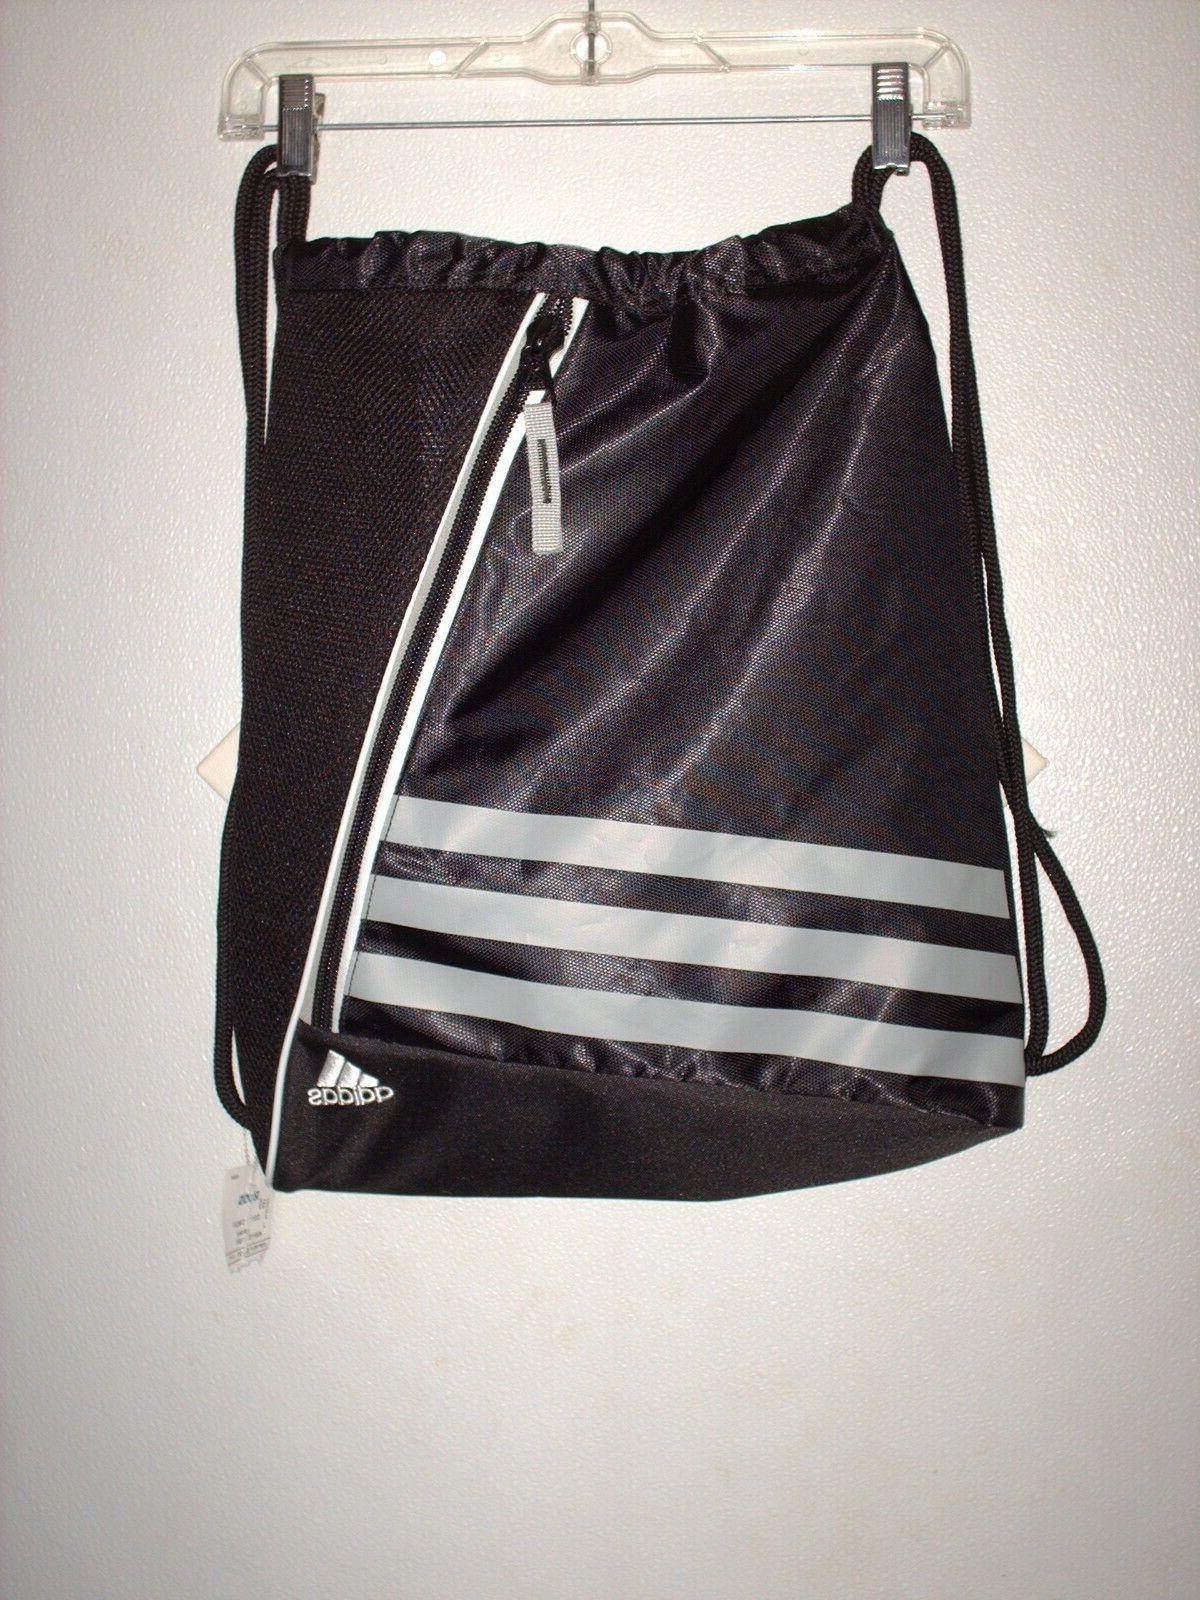 nwt drawstring backpack sport gym sack bag